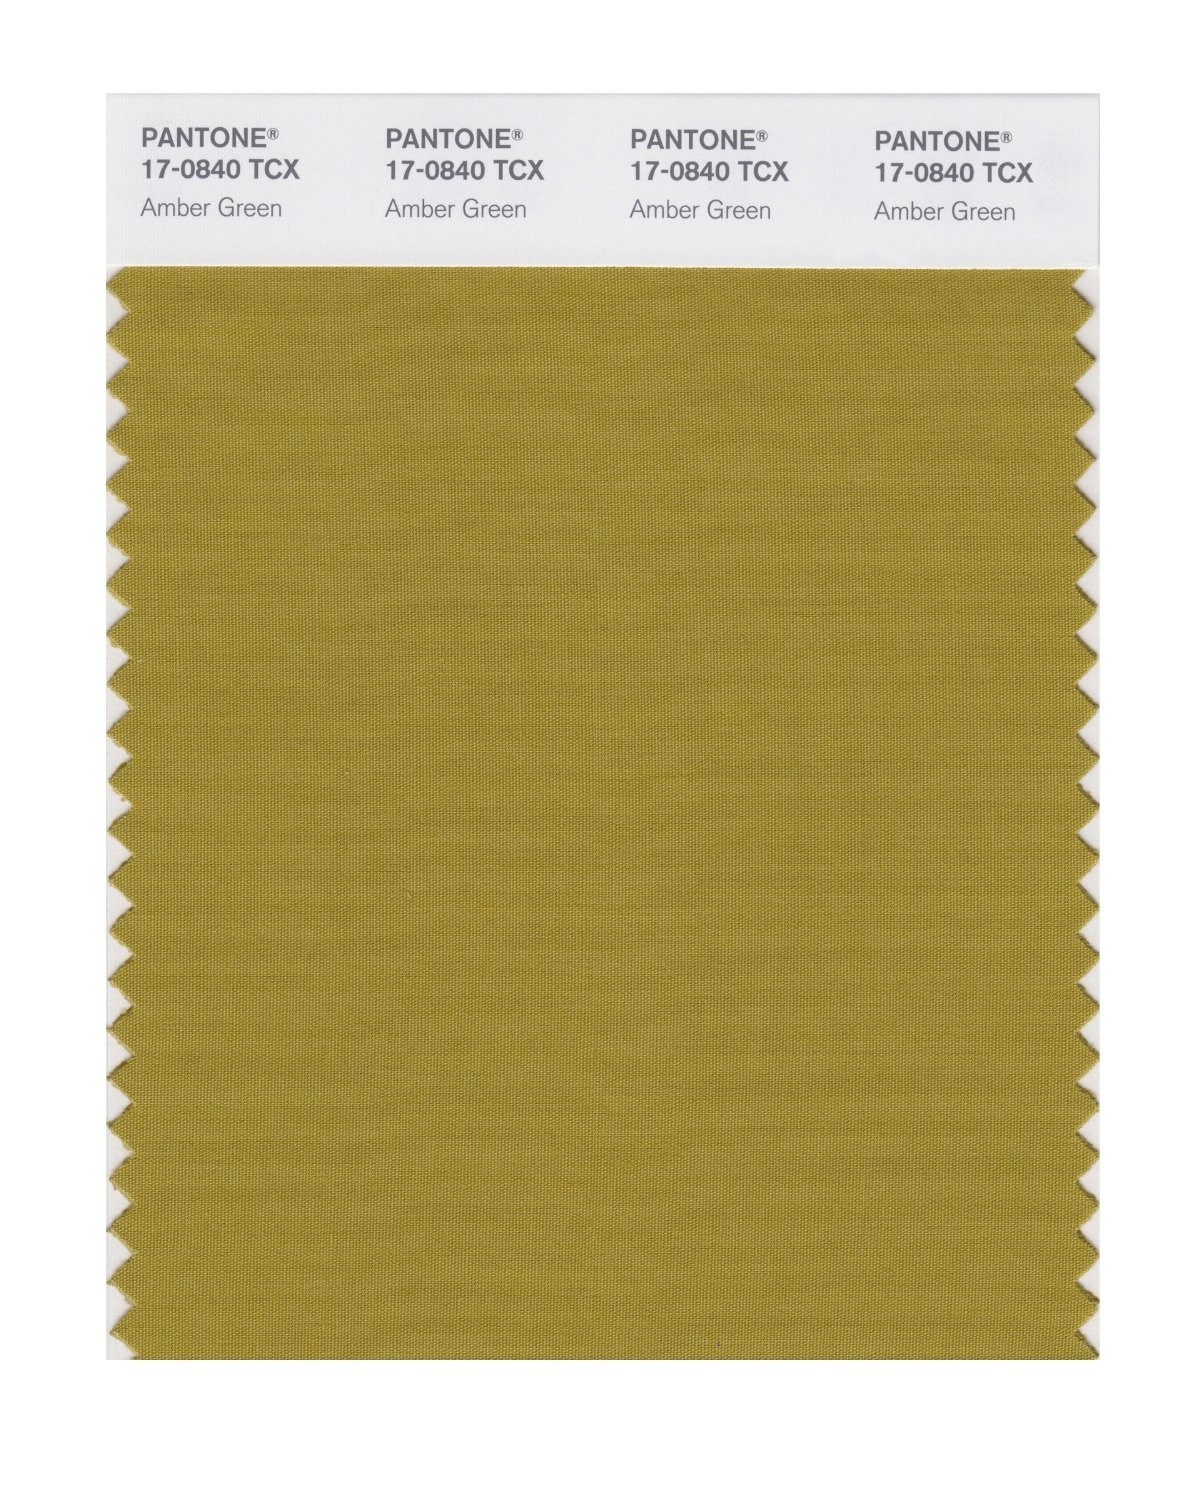 Pantone 17-0840 TCX Swatch Card Amber Green